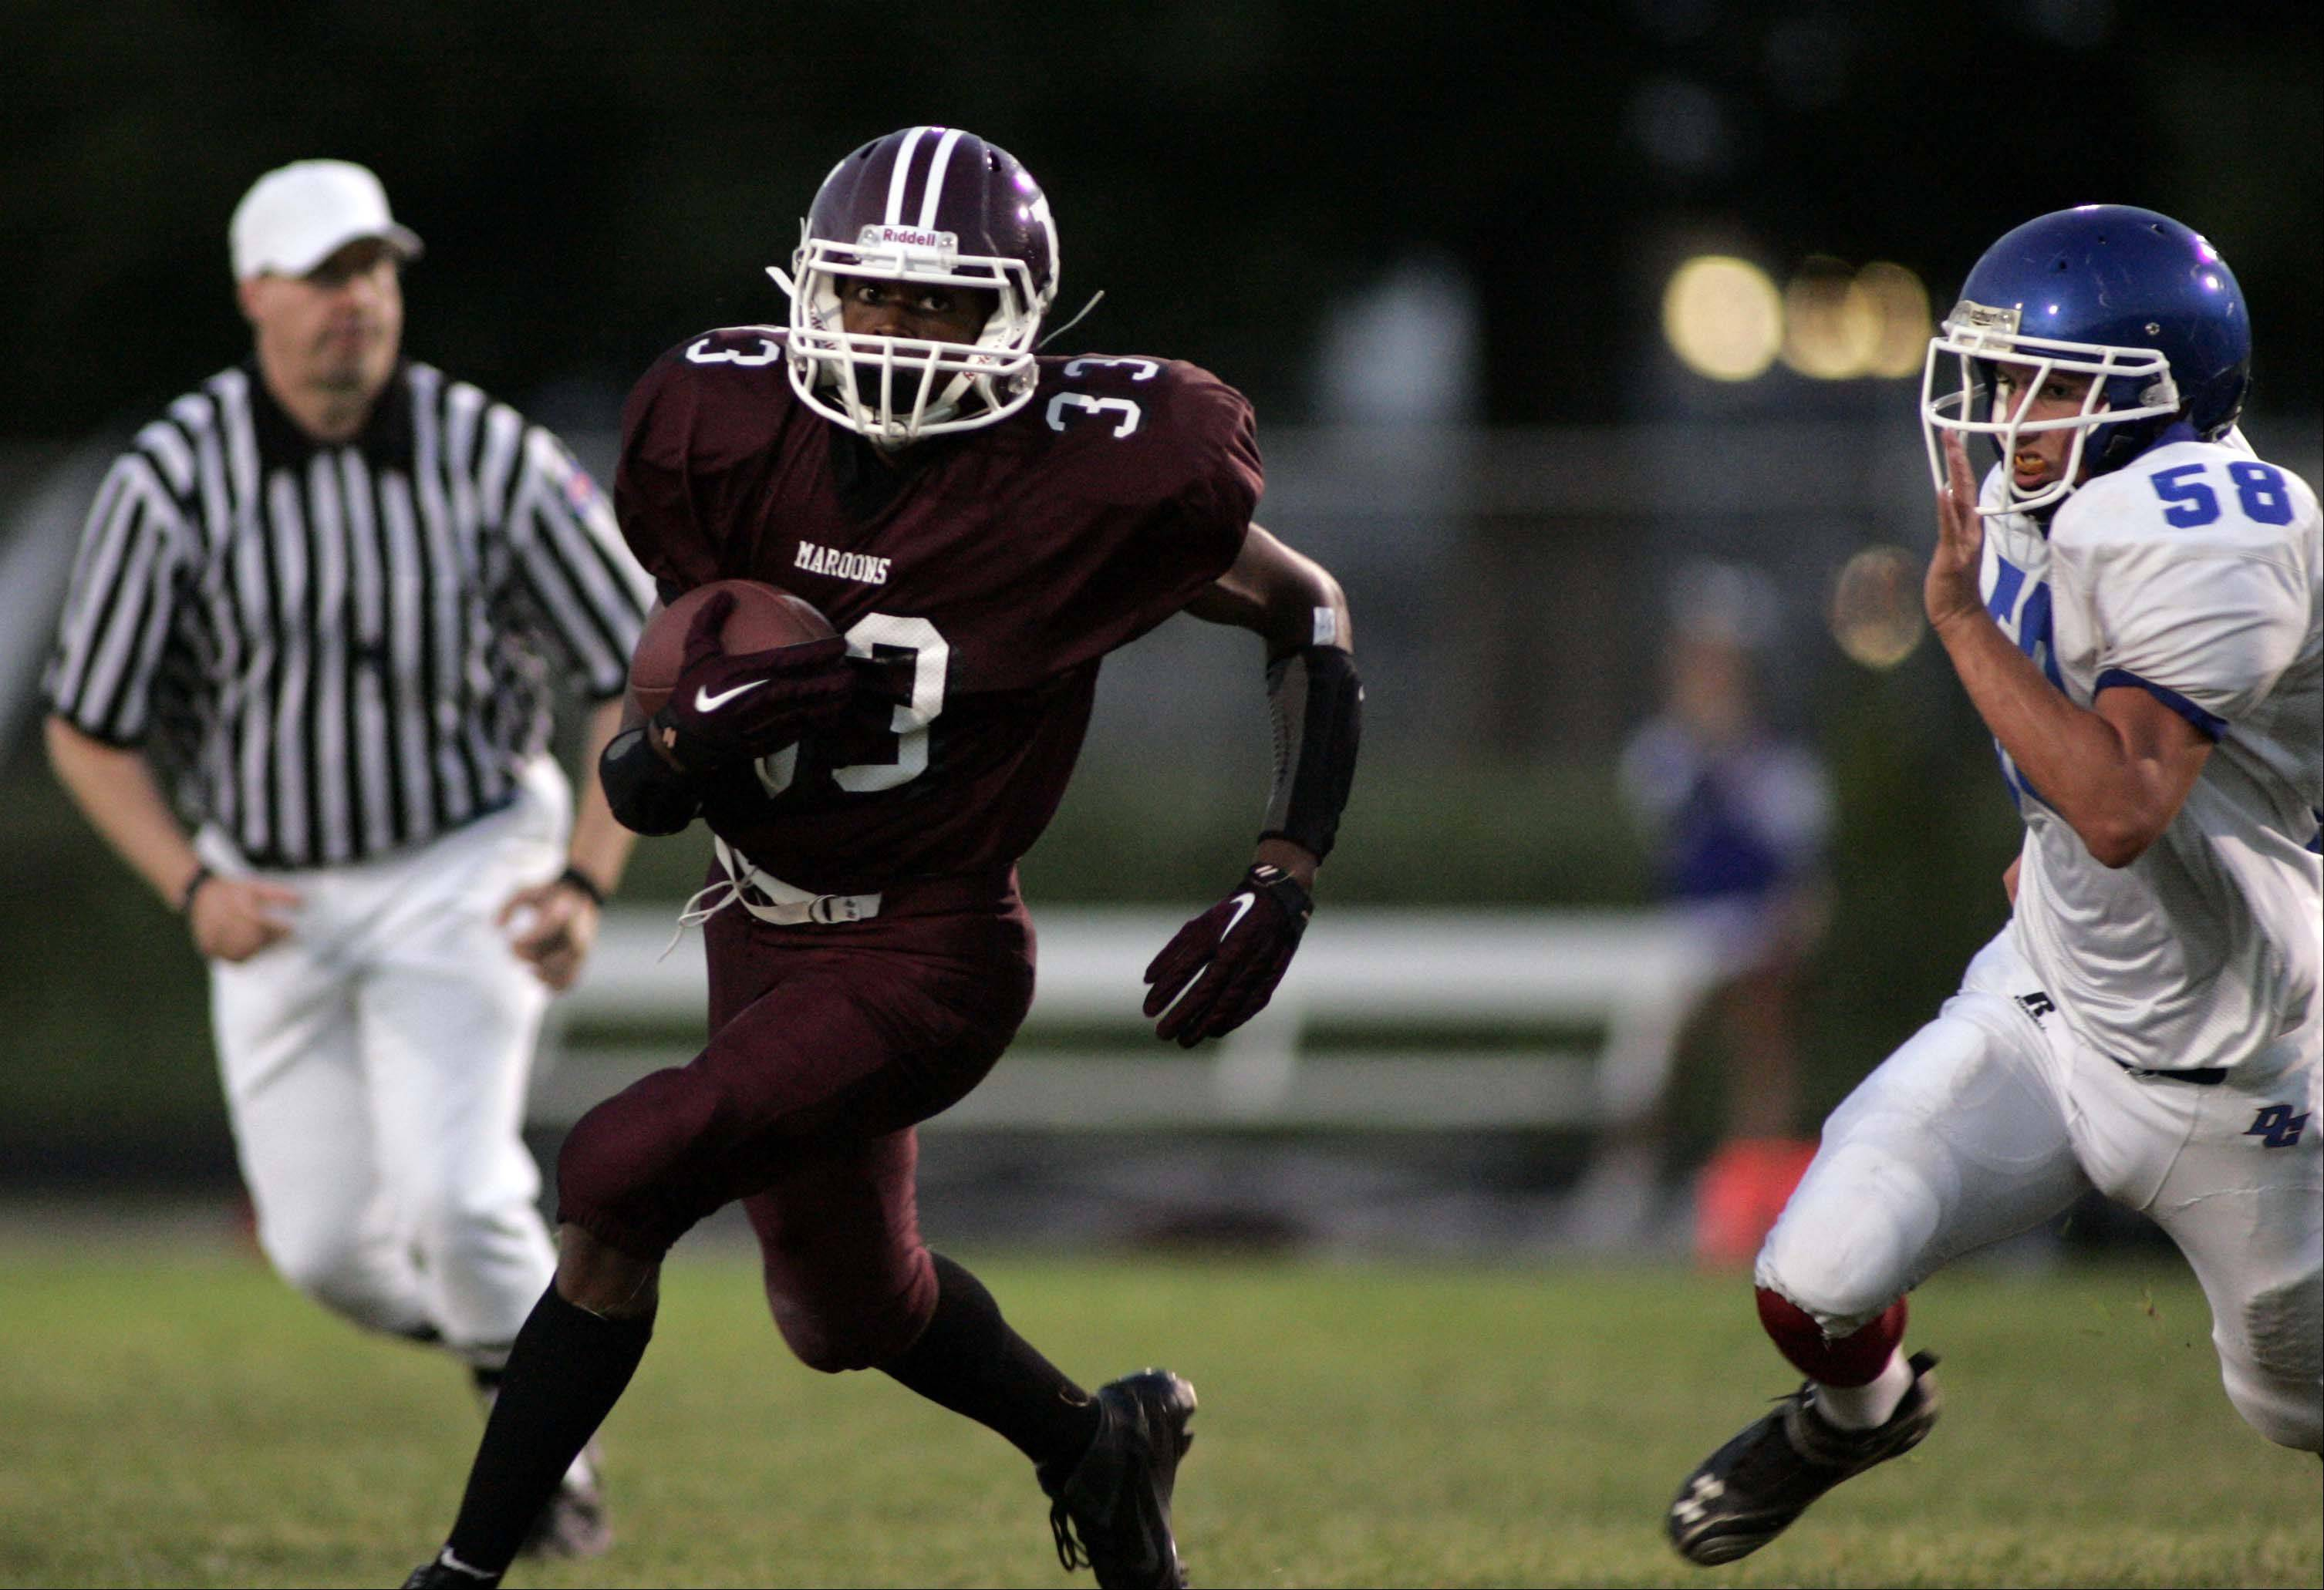 Elgin running back DeVante King makes his way around the end for a first-quarter touchdown against Dundee-Crown.